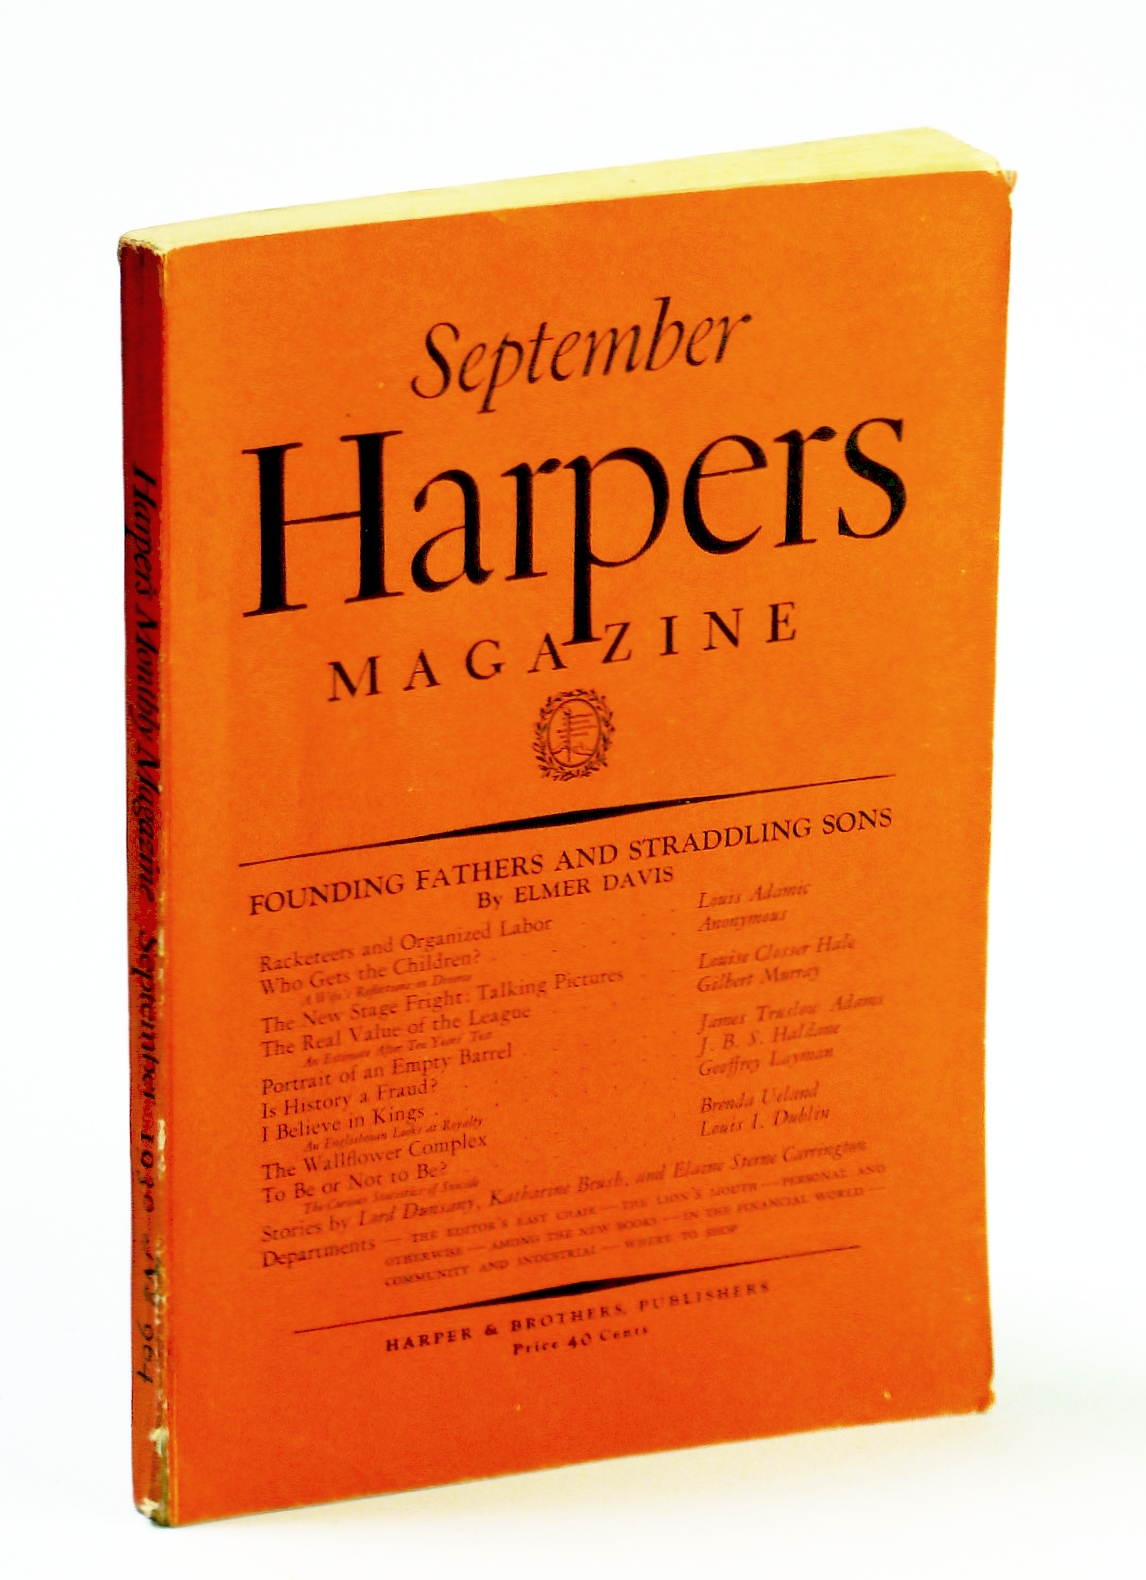 Image for Harpers Magazine, September (Sept.) 1930, No. 964 - Racketeers and Organized Labor